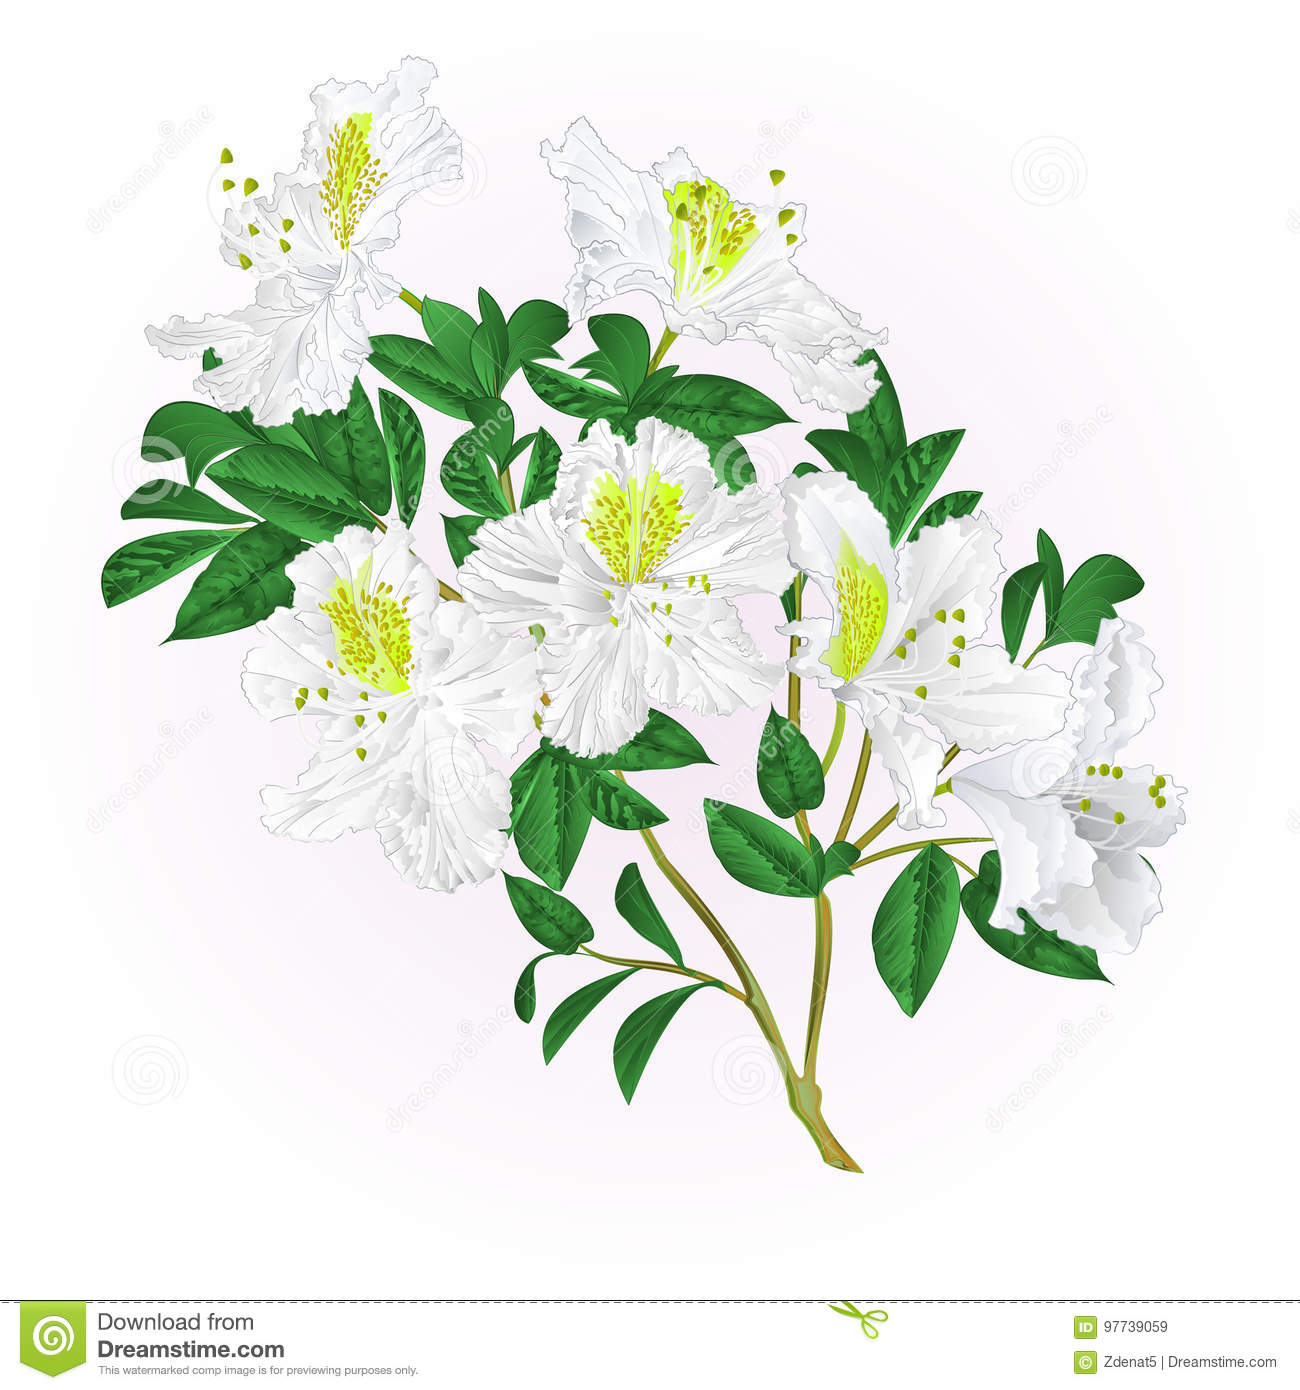 White rhododendron twig with flowers and leaves mountain shrub vintage vector editable illustration